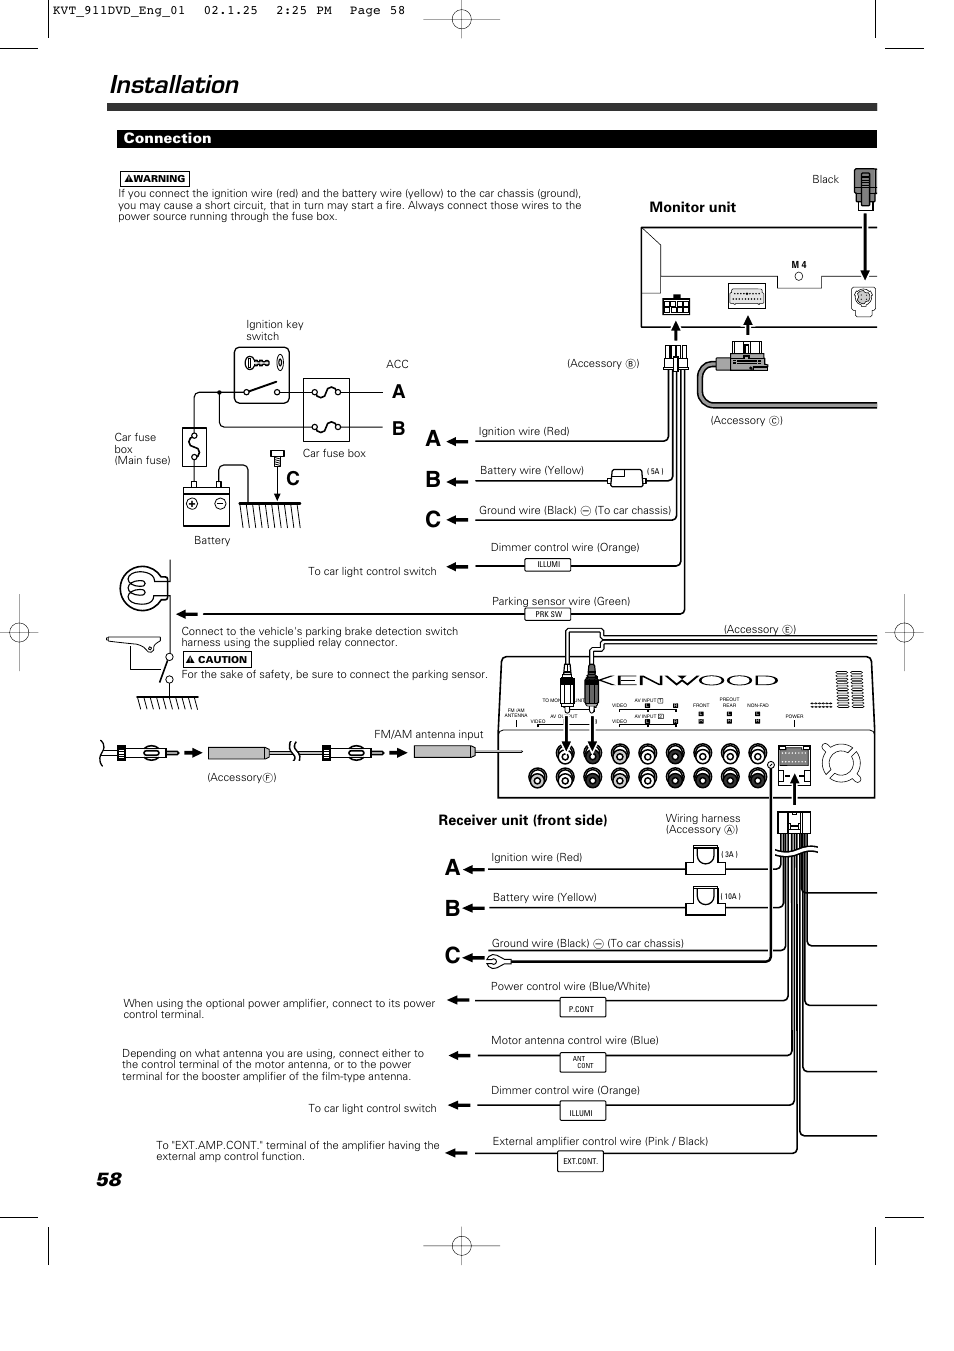 Kenwood deck wiring diagram wiring harness kenwood dnx570hd wiring diagram deck kenwood model kdc wiring diagram kenwood kdc 352u deck asfbconference2016 Image collections